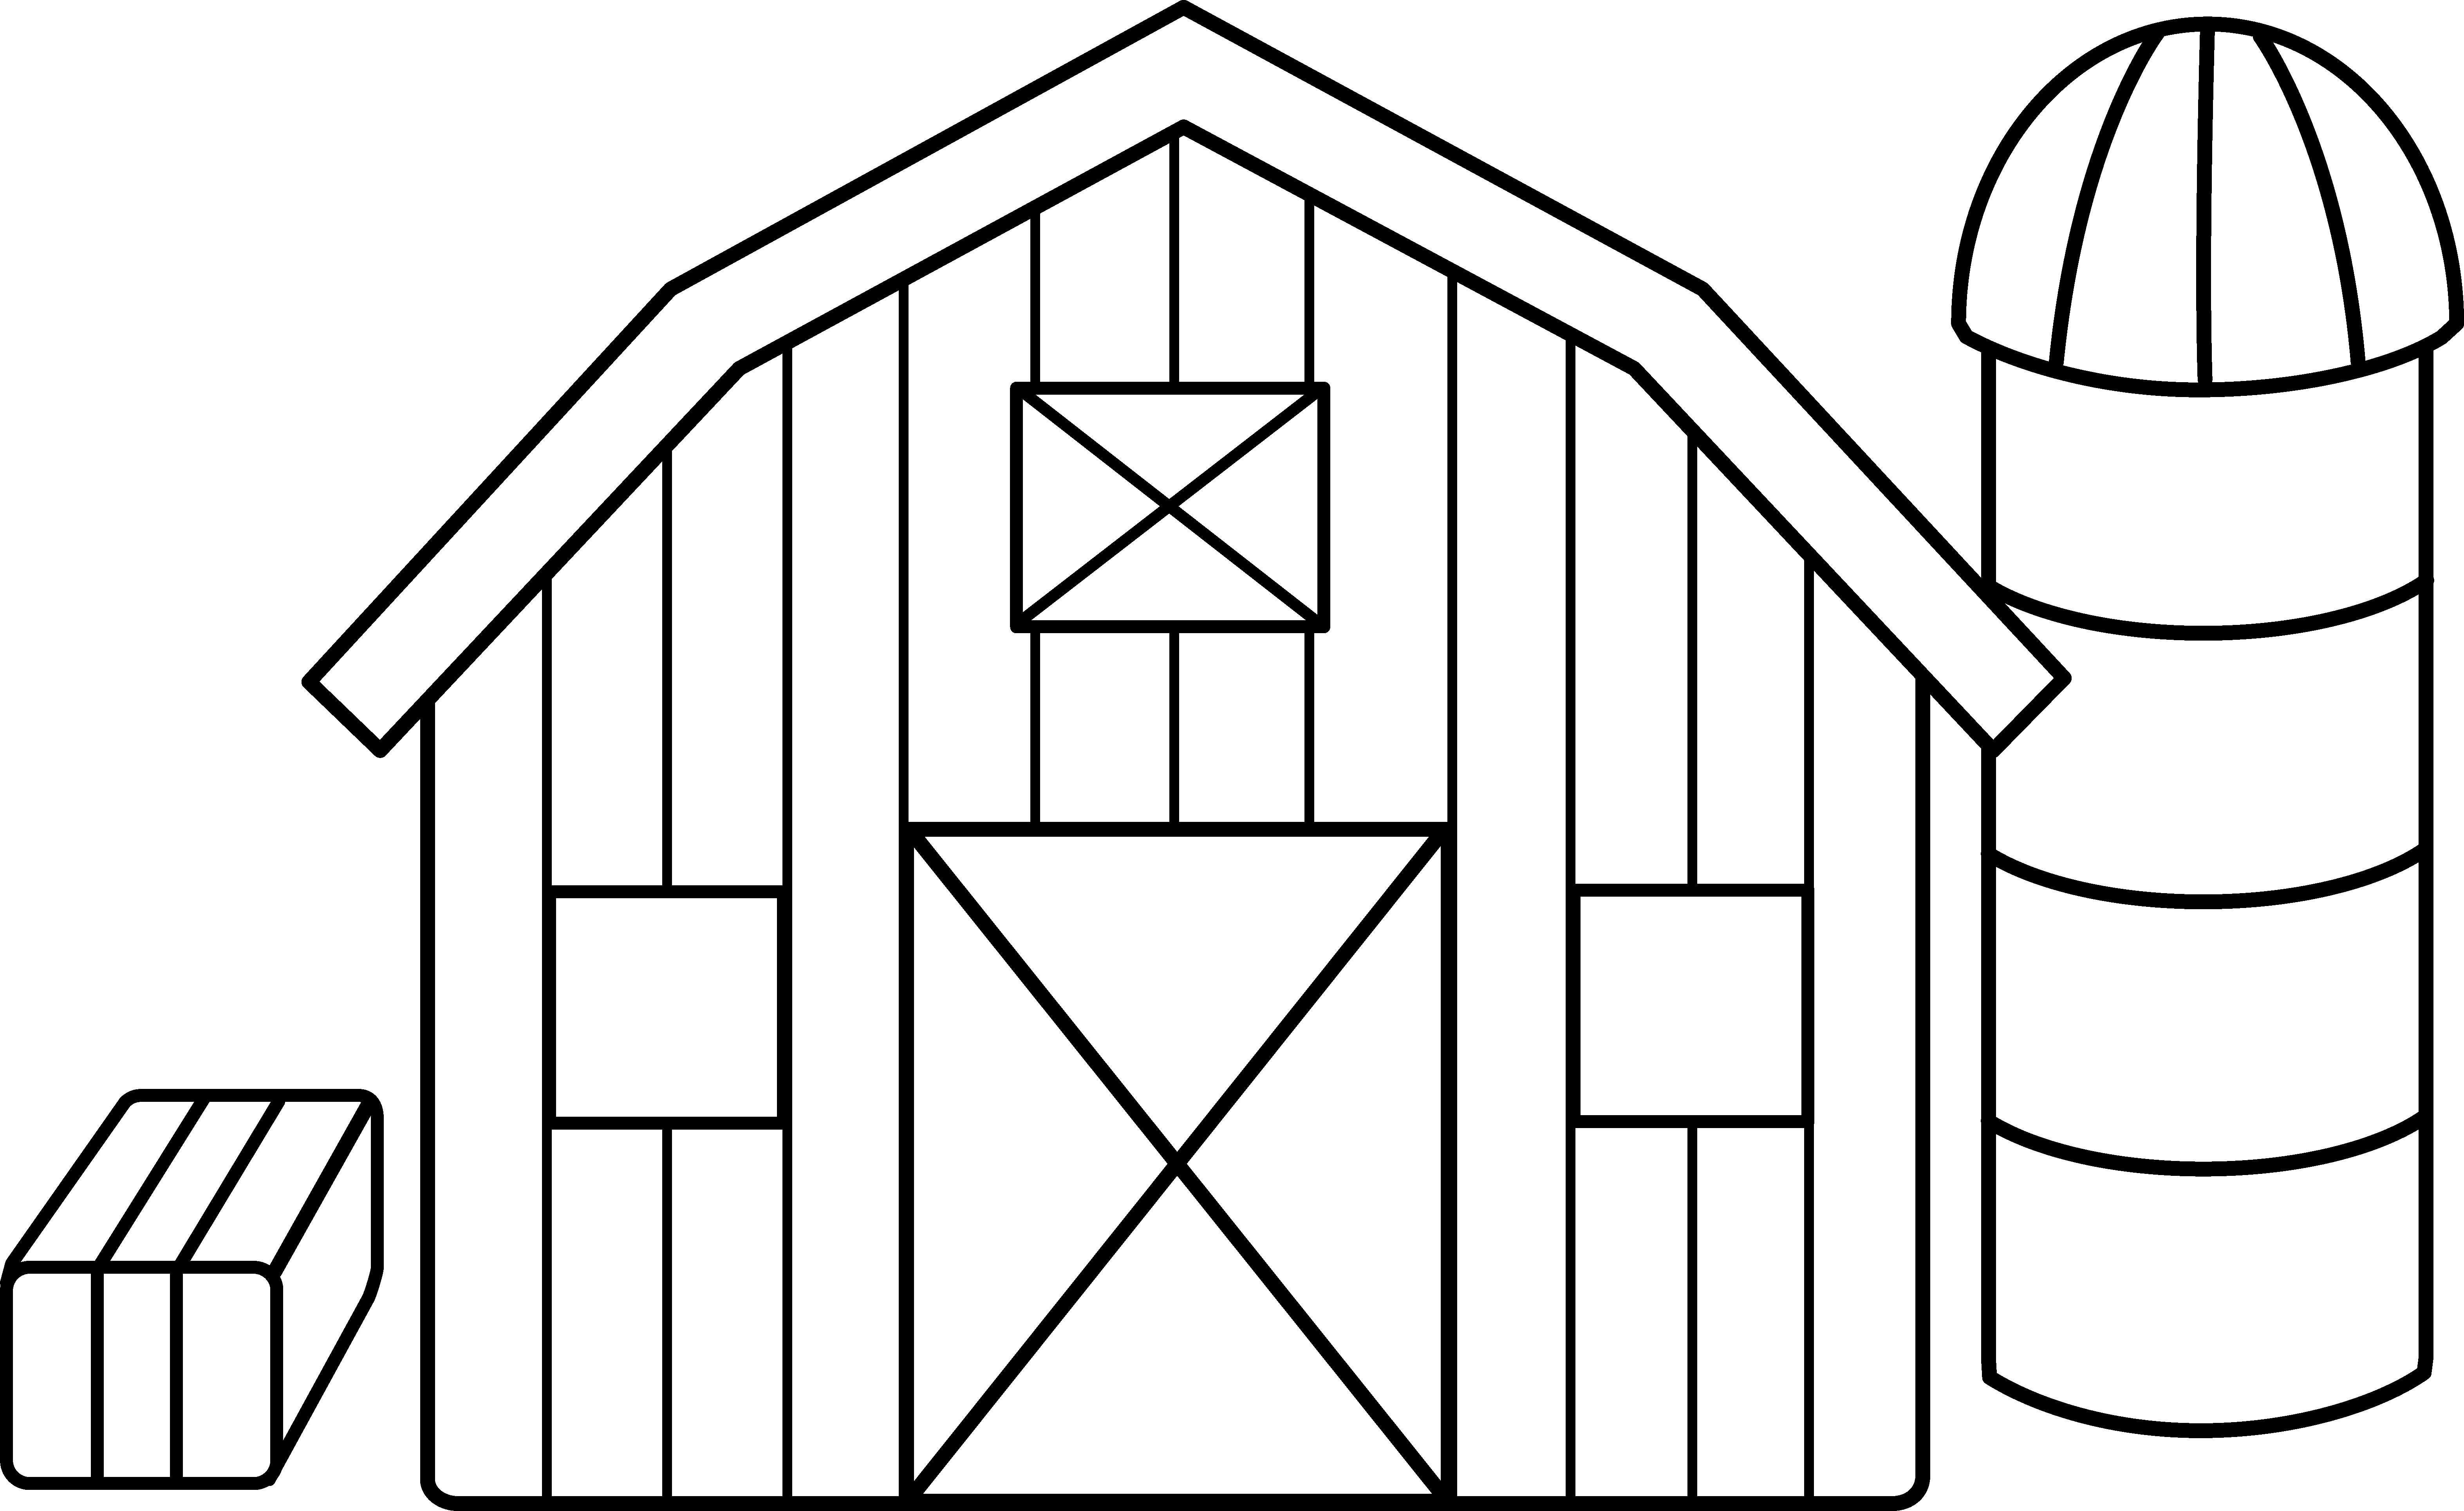 House line art clipart image free download Cute Colorable Farm Scene - Free Clip Art image free download